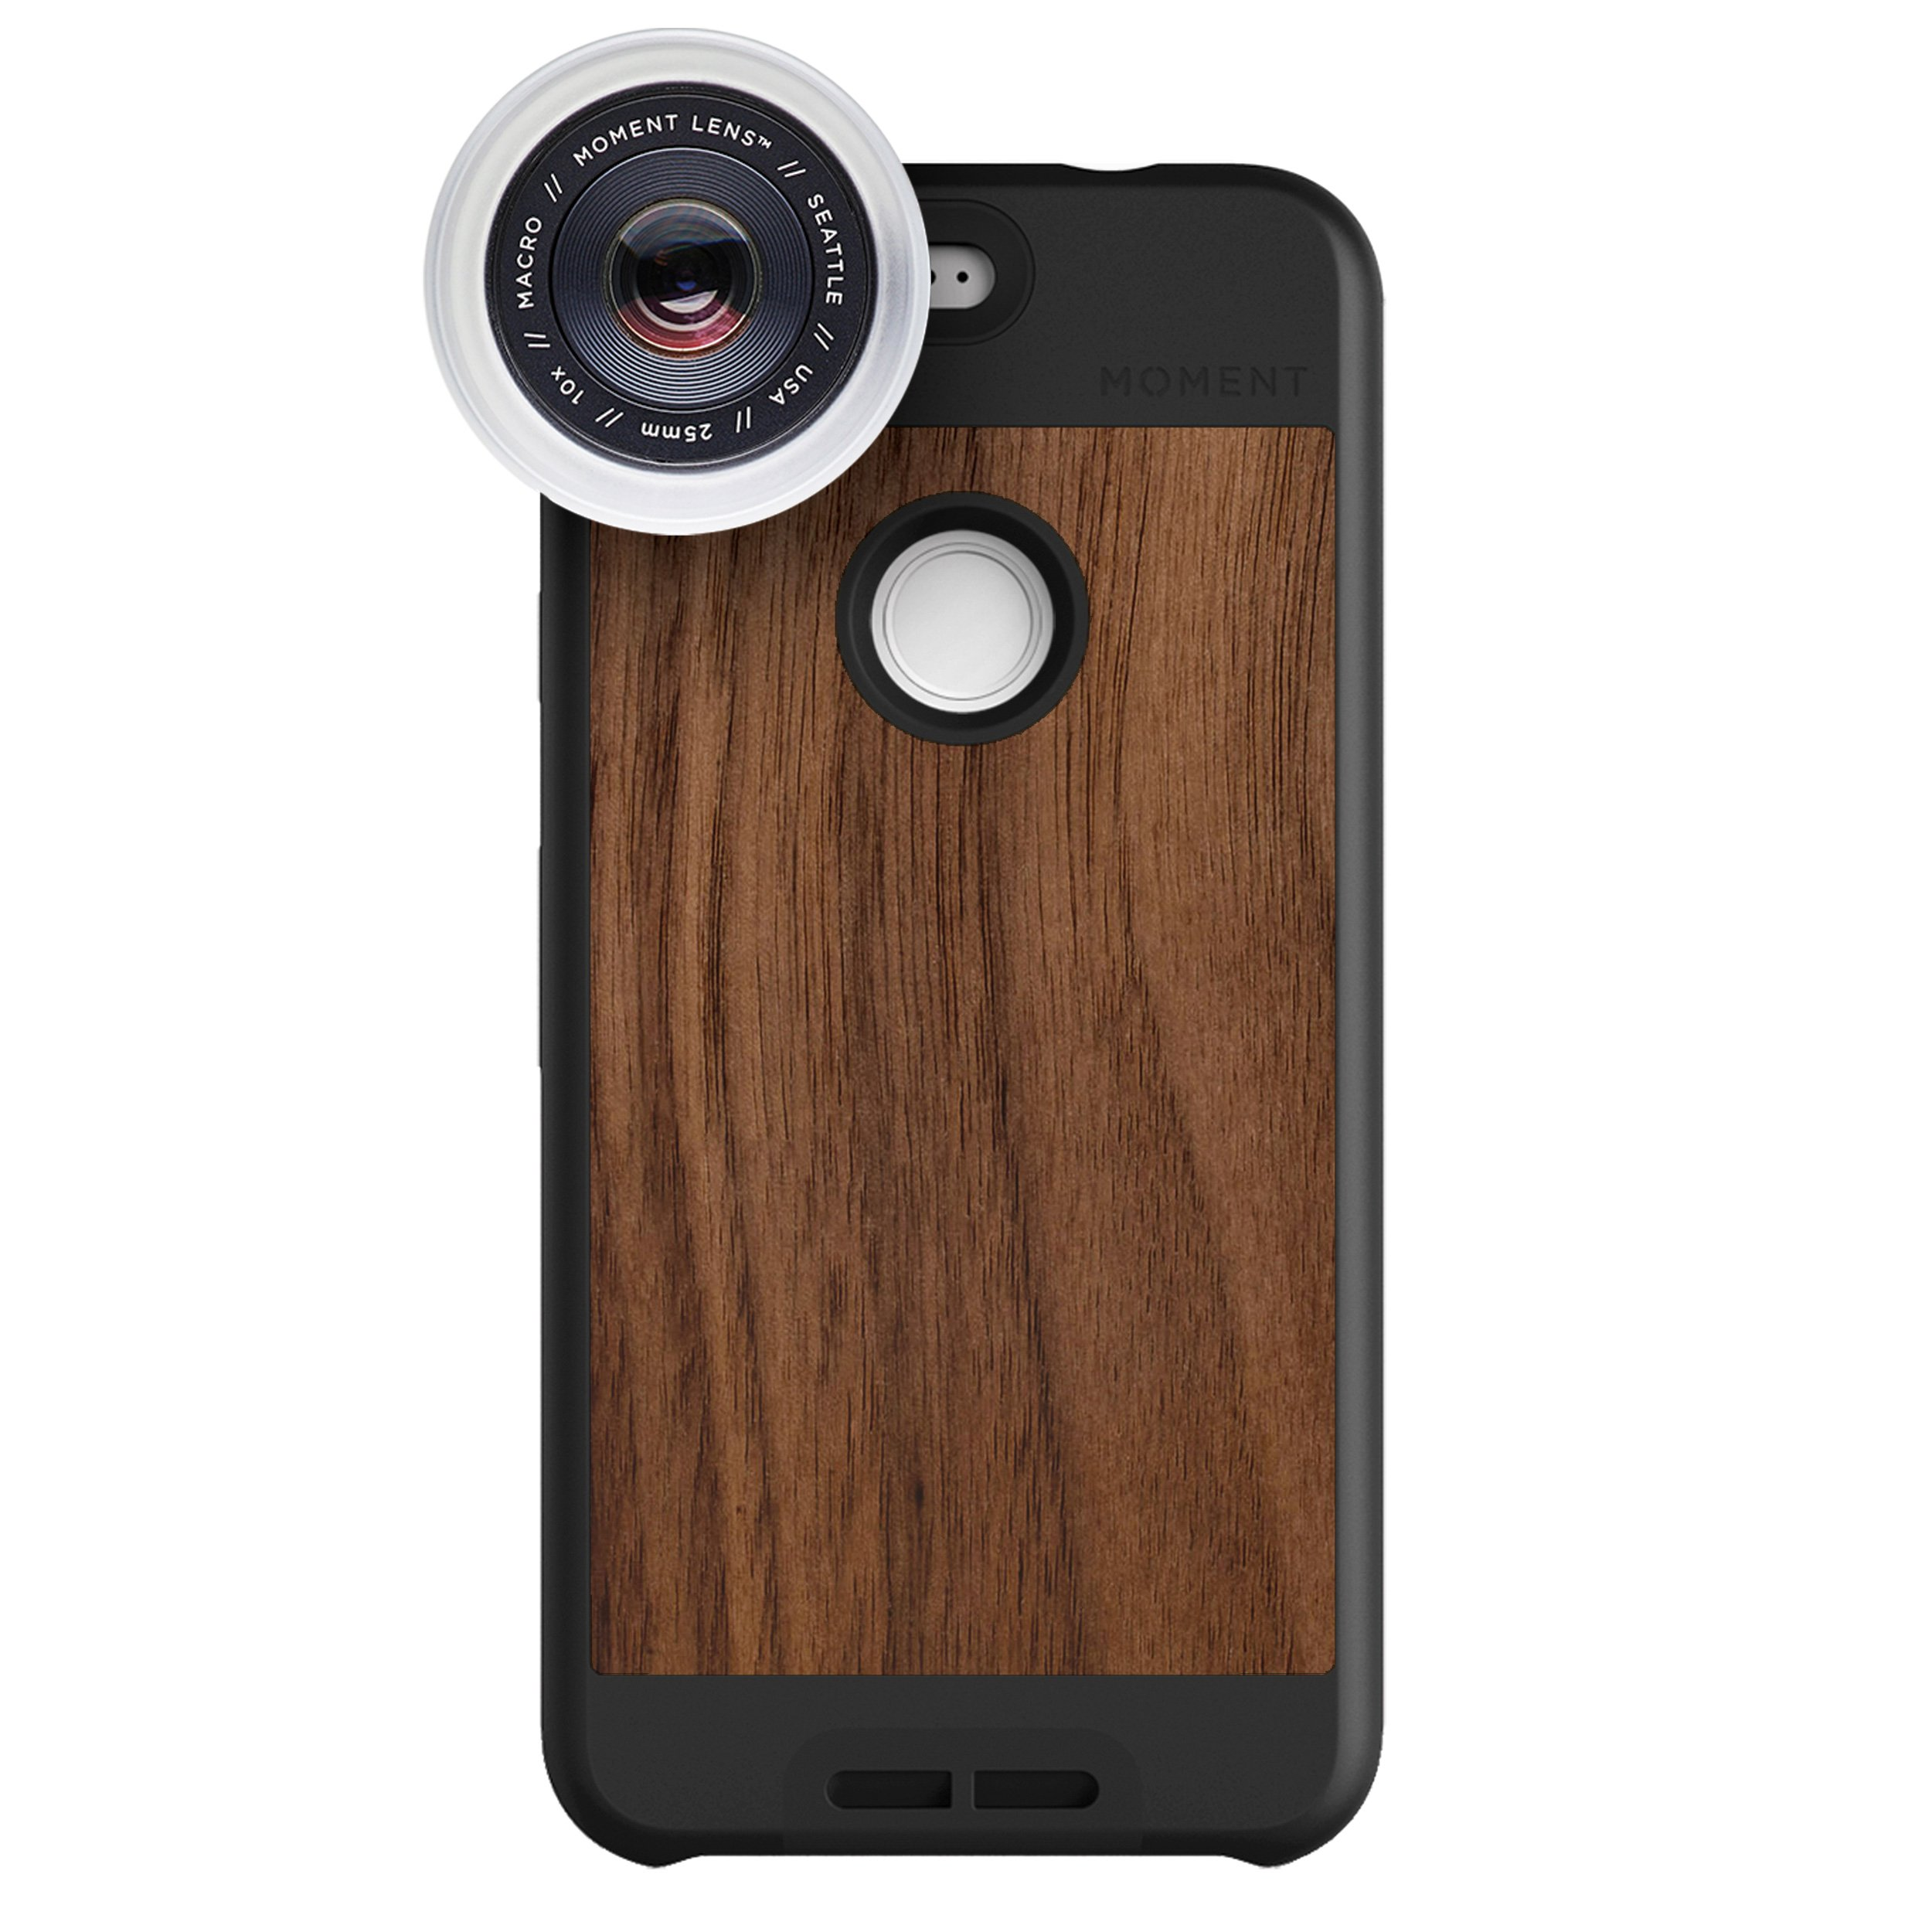 Google Pixel Case with Macro Lens Kit || Moment Walnut Wood Photo Case plus Macro Lens || Best google macro attachment lens with thin protective case.